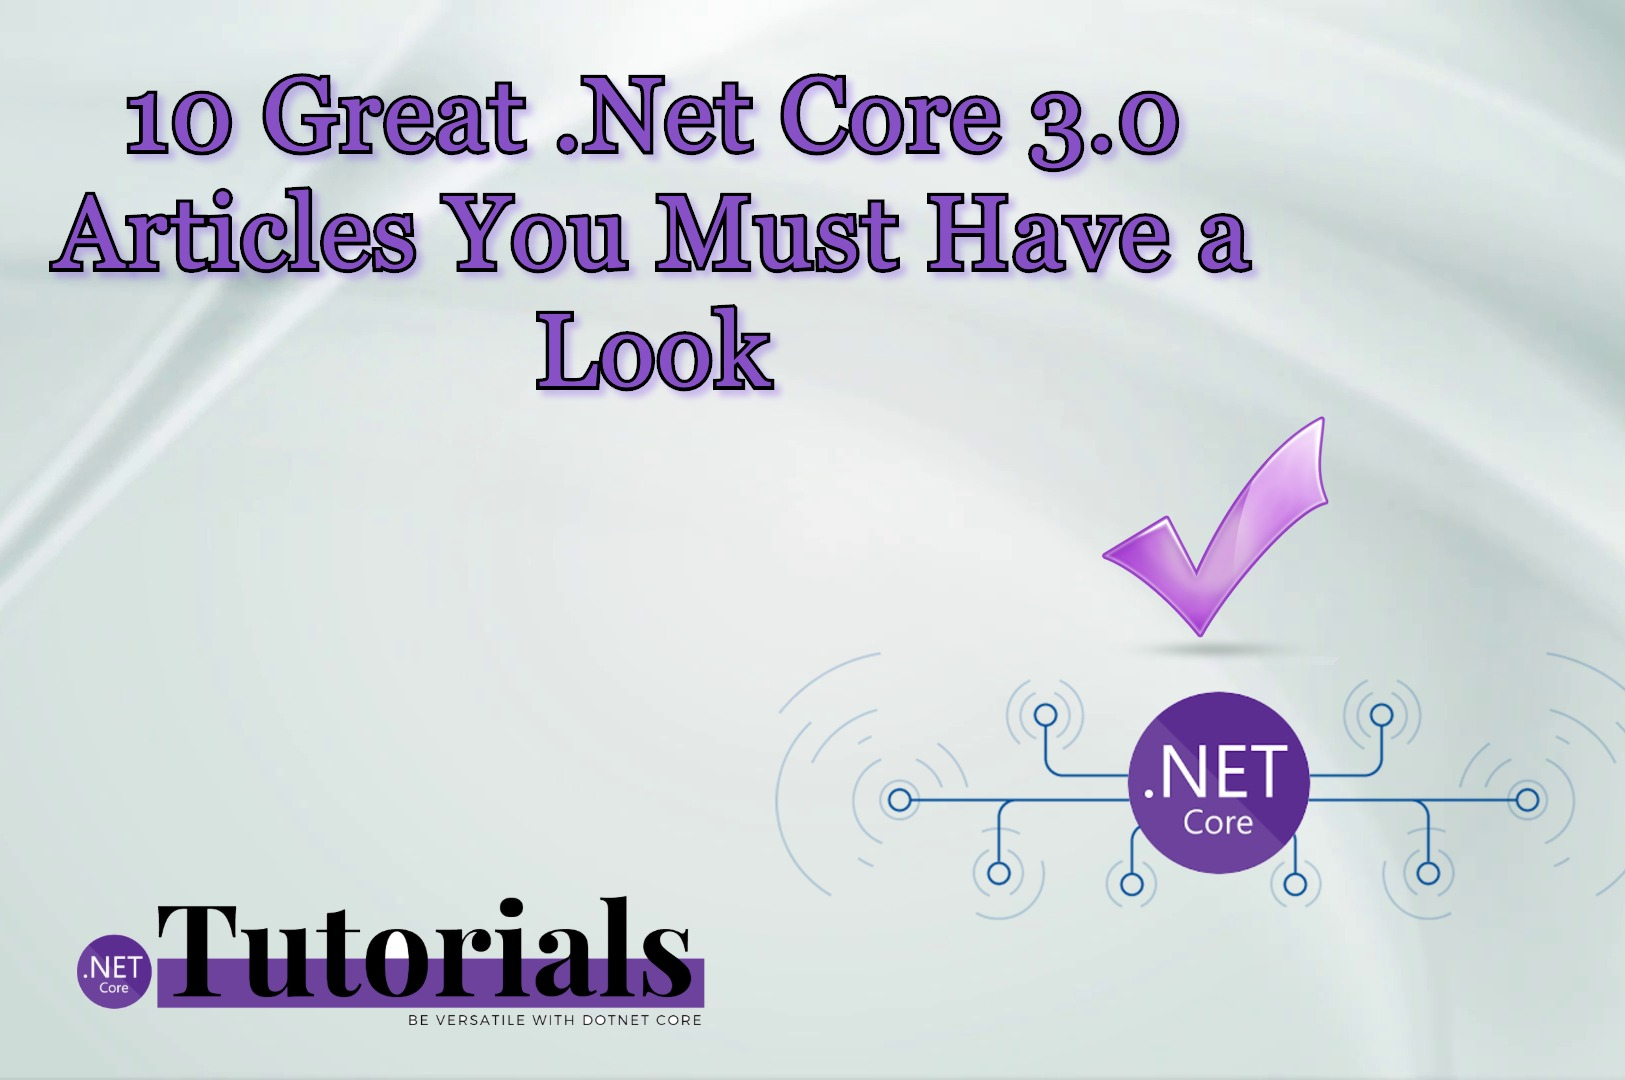 10 Great .Net Core 3.0 Articles you must have a Look